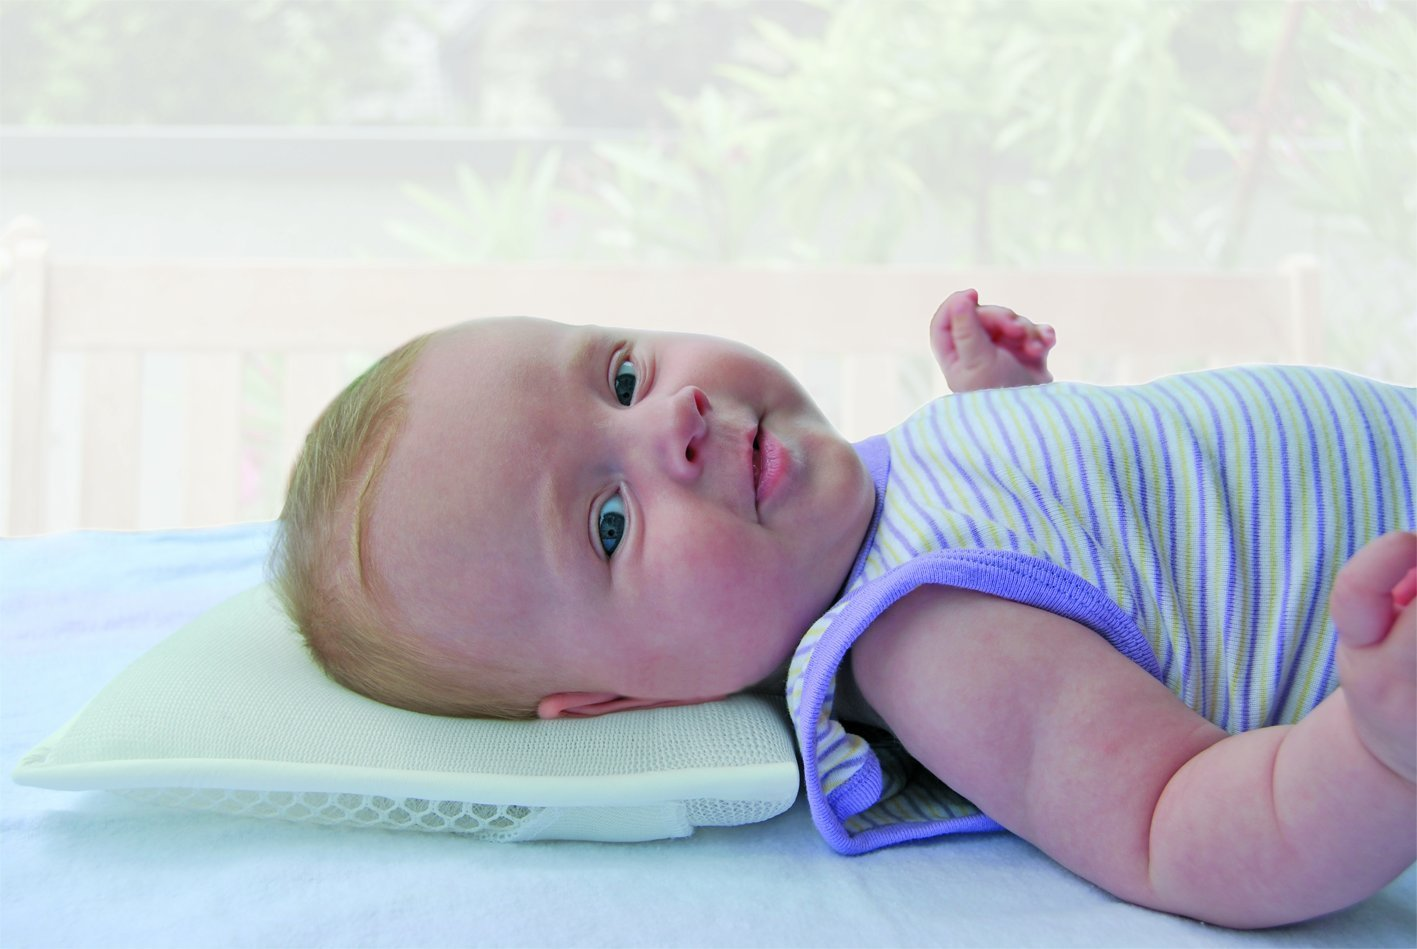 Baby Kopfkissen Stiftung Warentest ᐅᐅbabykopfkissen Test Infos Reviews Und Top Produkte ᐅ Neu